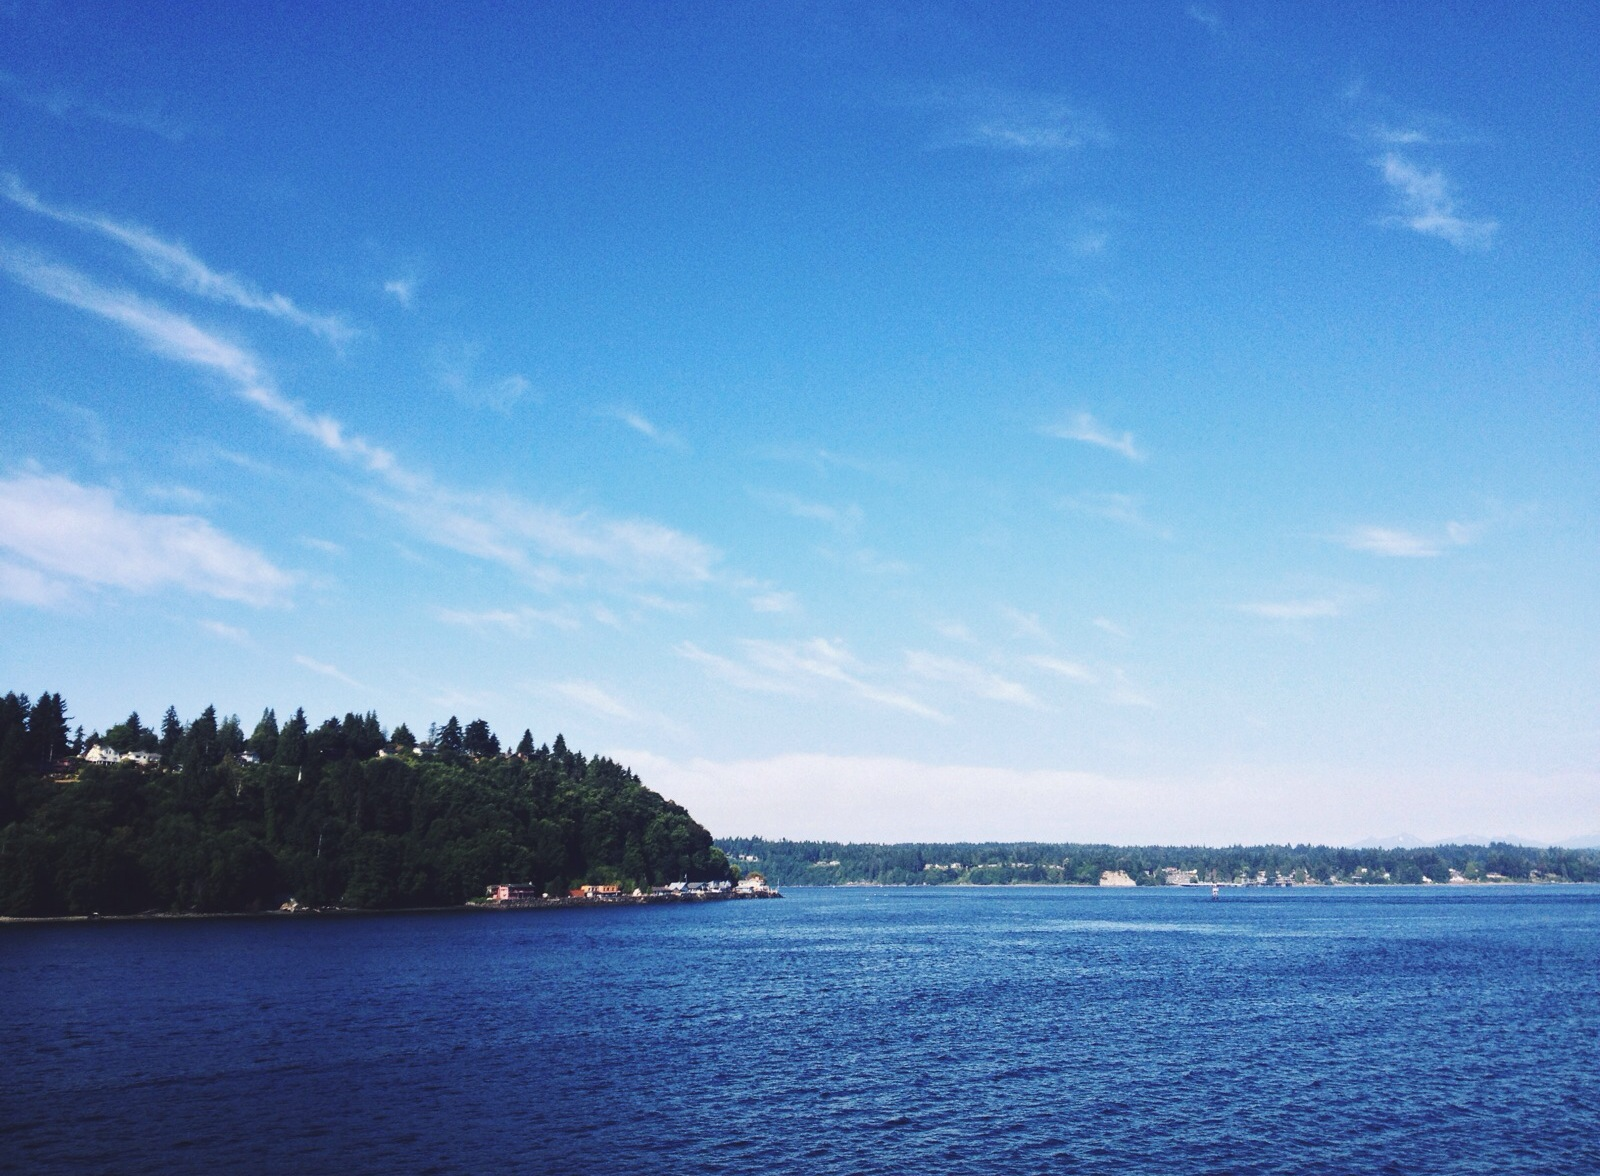 On Sunday, I took the ferry over to Vashon Island for a Slow Food visit to Kurtwood Farms.